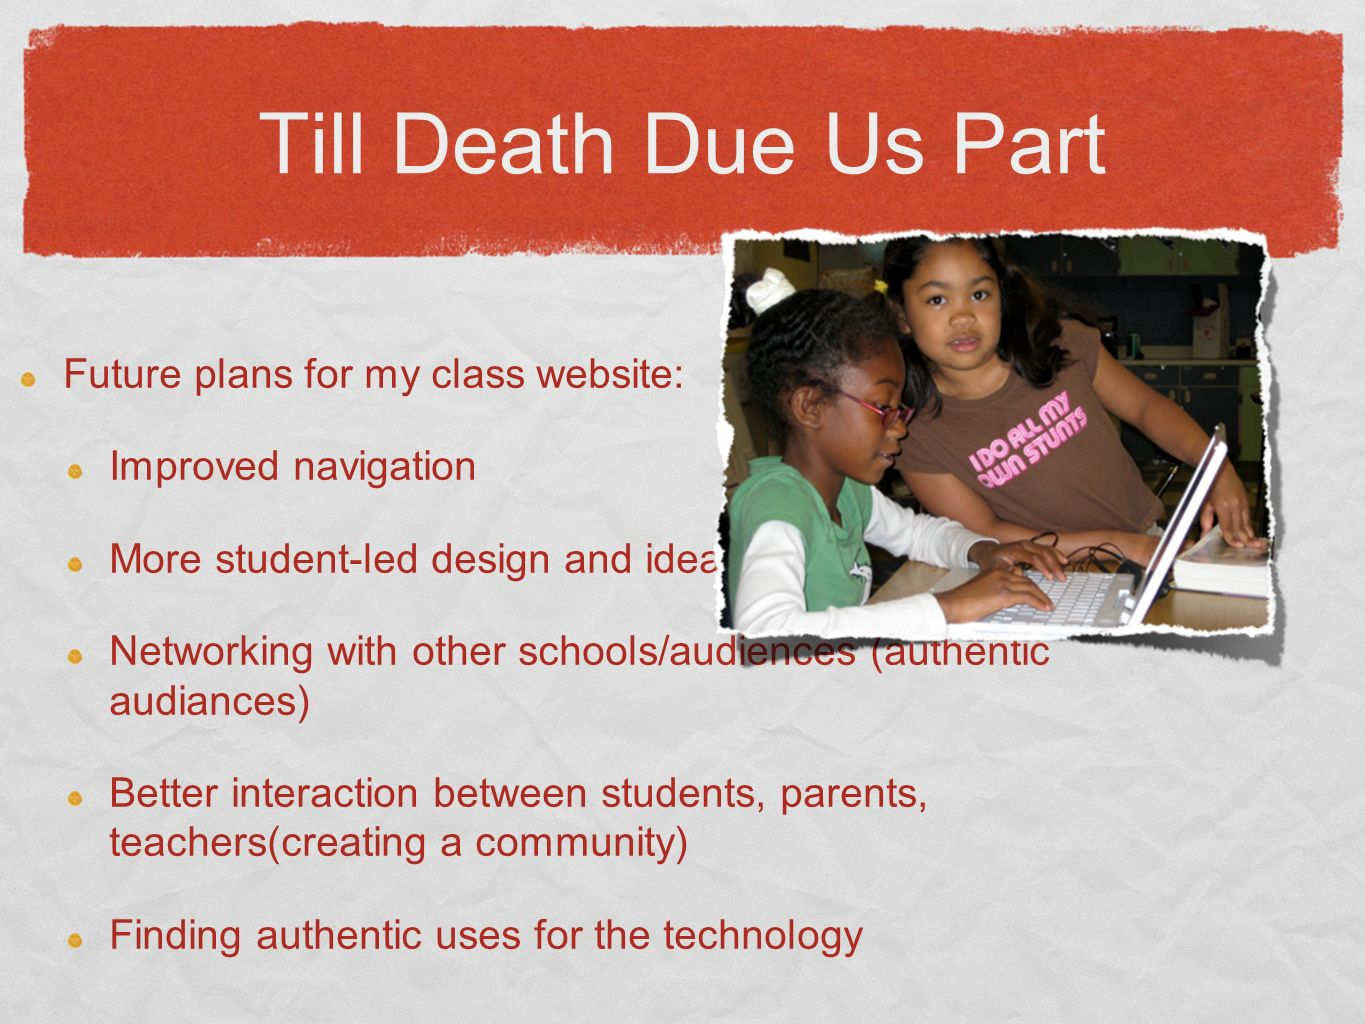 Till Death Due Us Part Future plans for my class website: Improved navigation More student-led design and ideas Networking with other schools/audiences (authentic audiances) Better interaction between students, parents, teachers(creating a community) Finding authentic uses for the technology